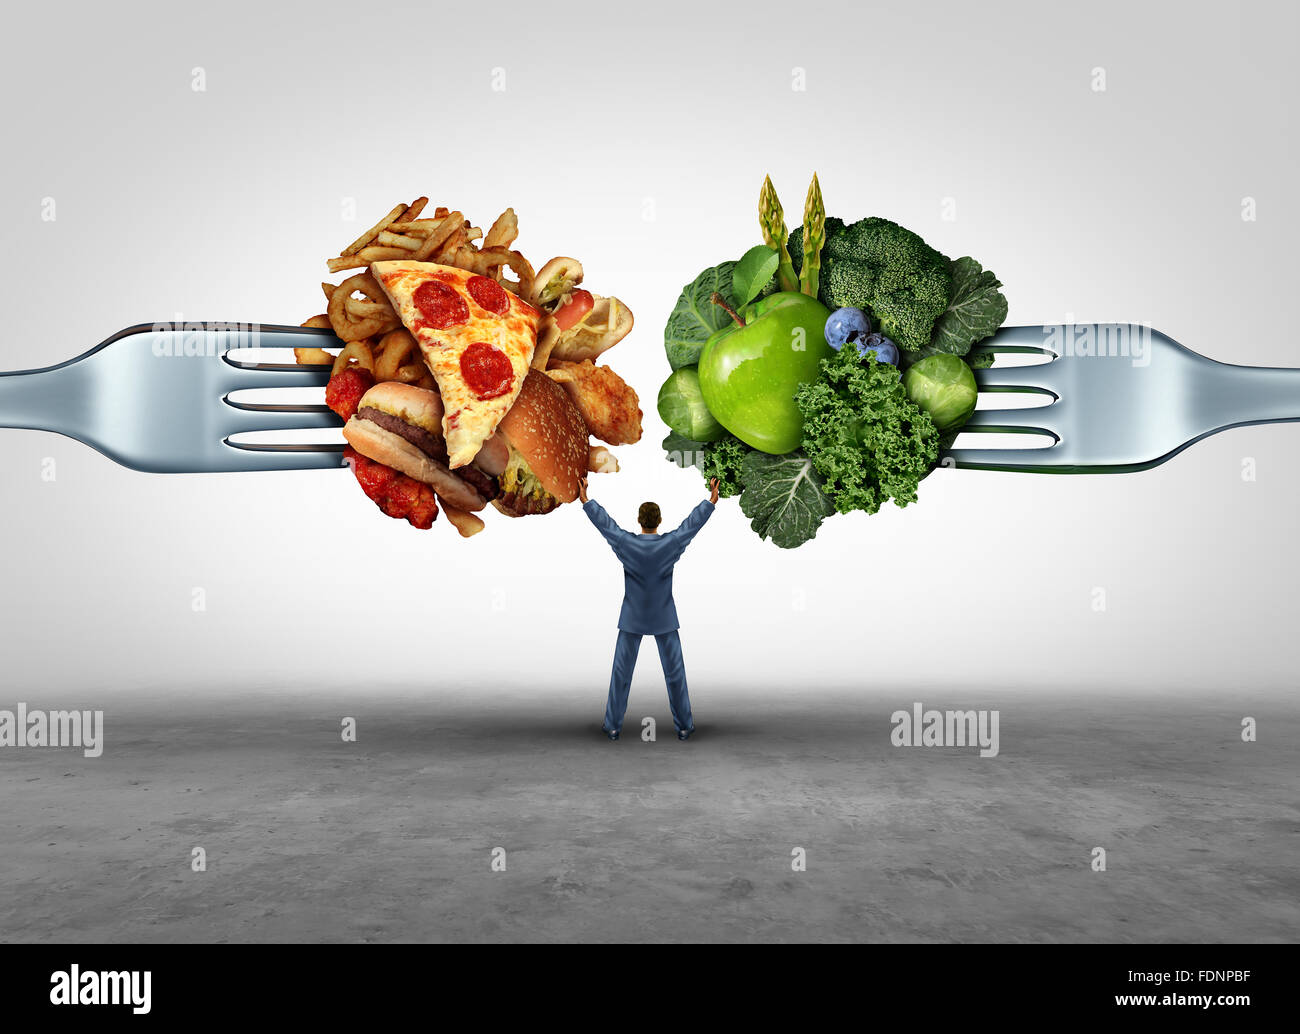 Food health decision and diet choice concept and nutrition options dilemma between healthy good fresh fruit and - Stock Image